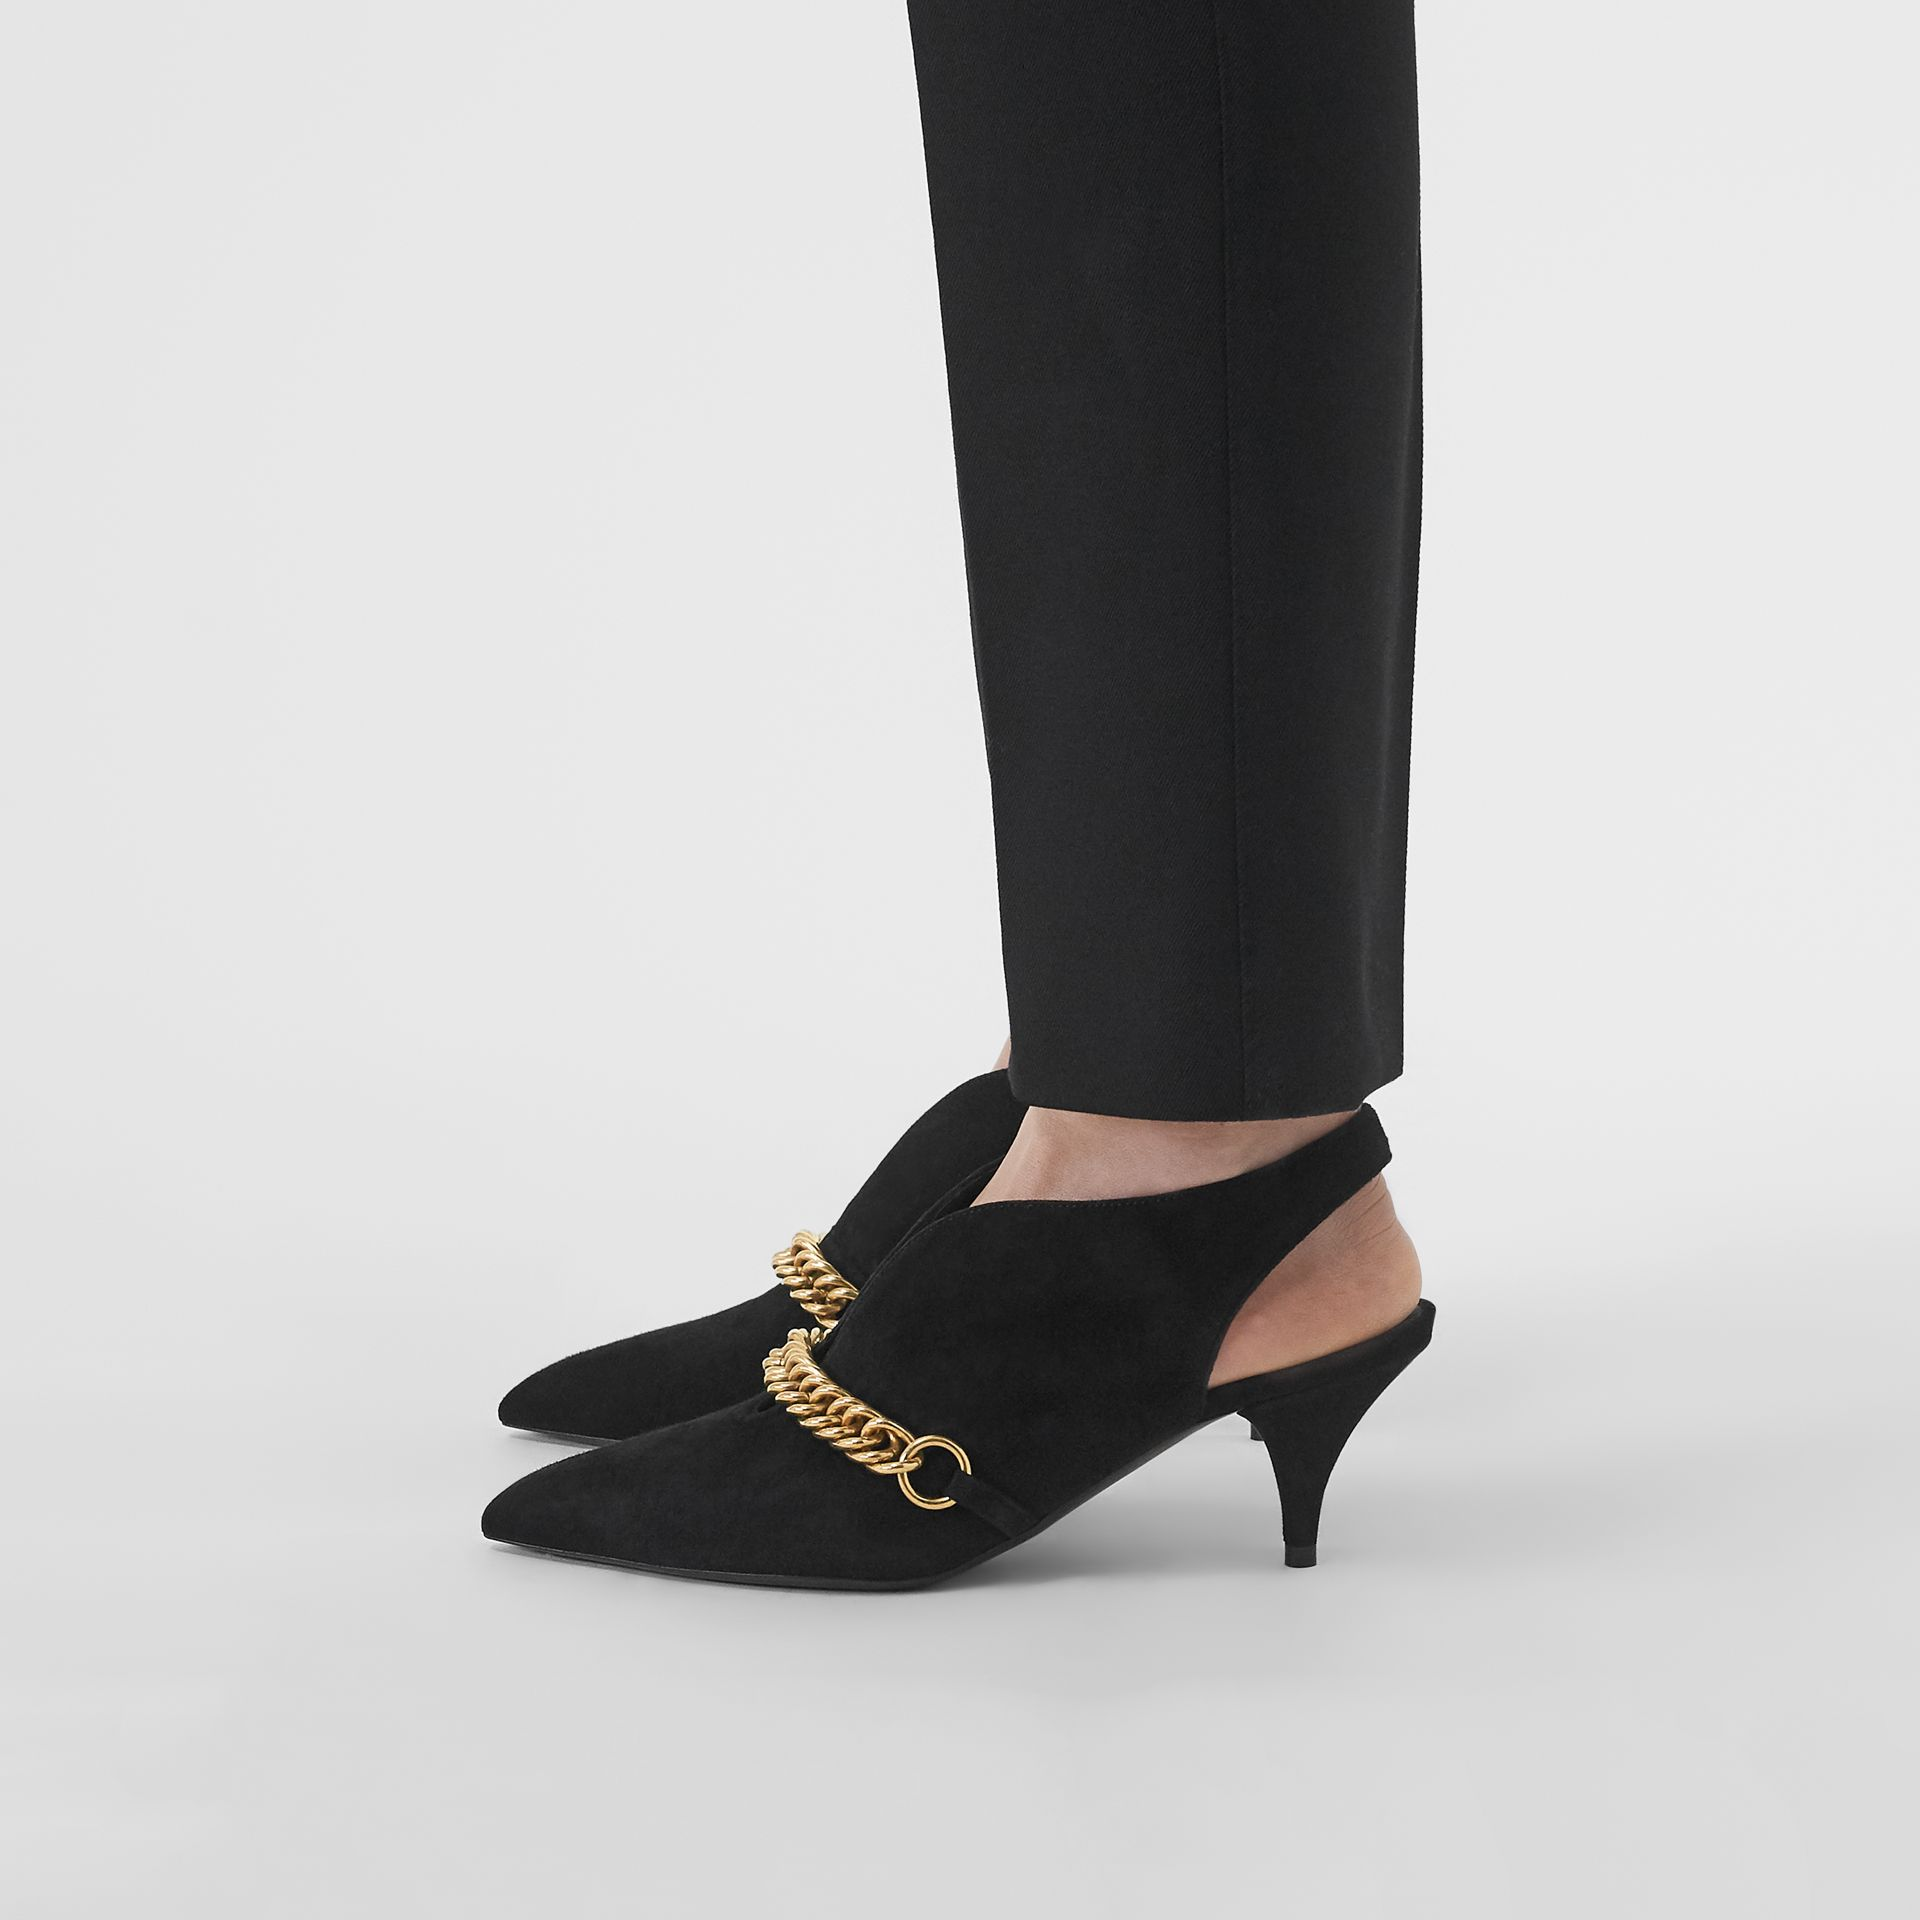 Link Detail Suede Slingback Pumps in Black - Women | Burberry - gallery image 2